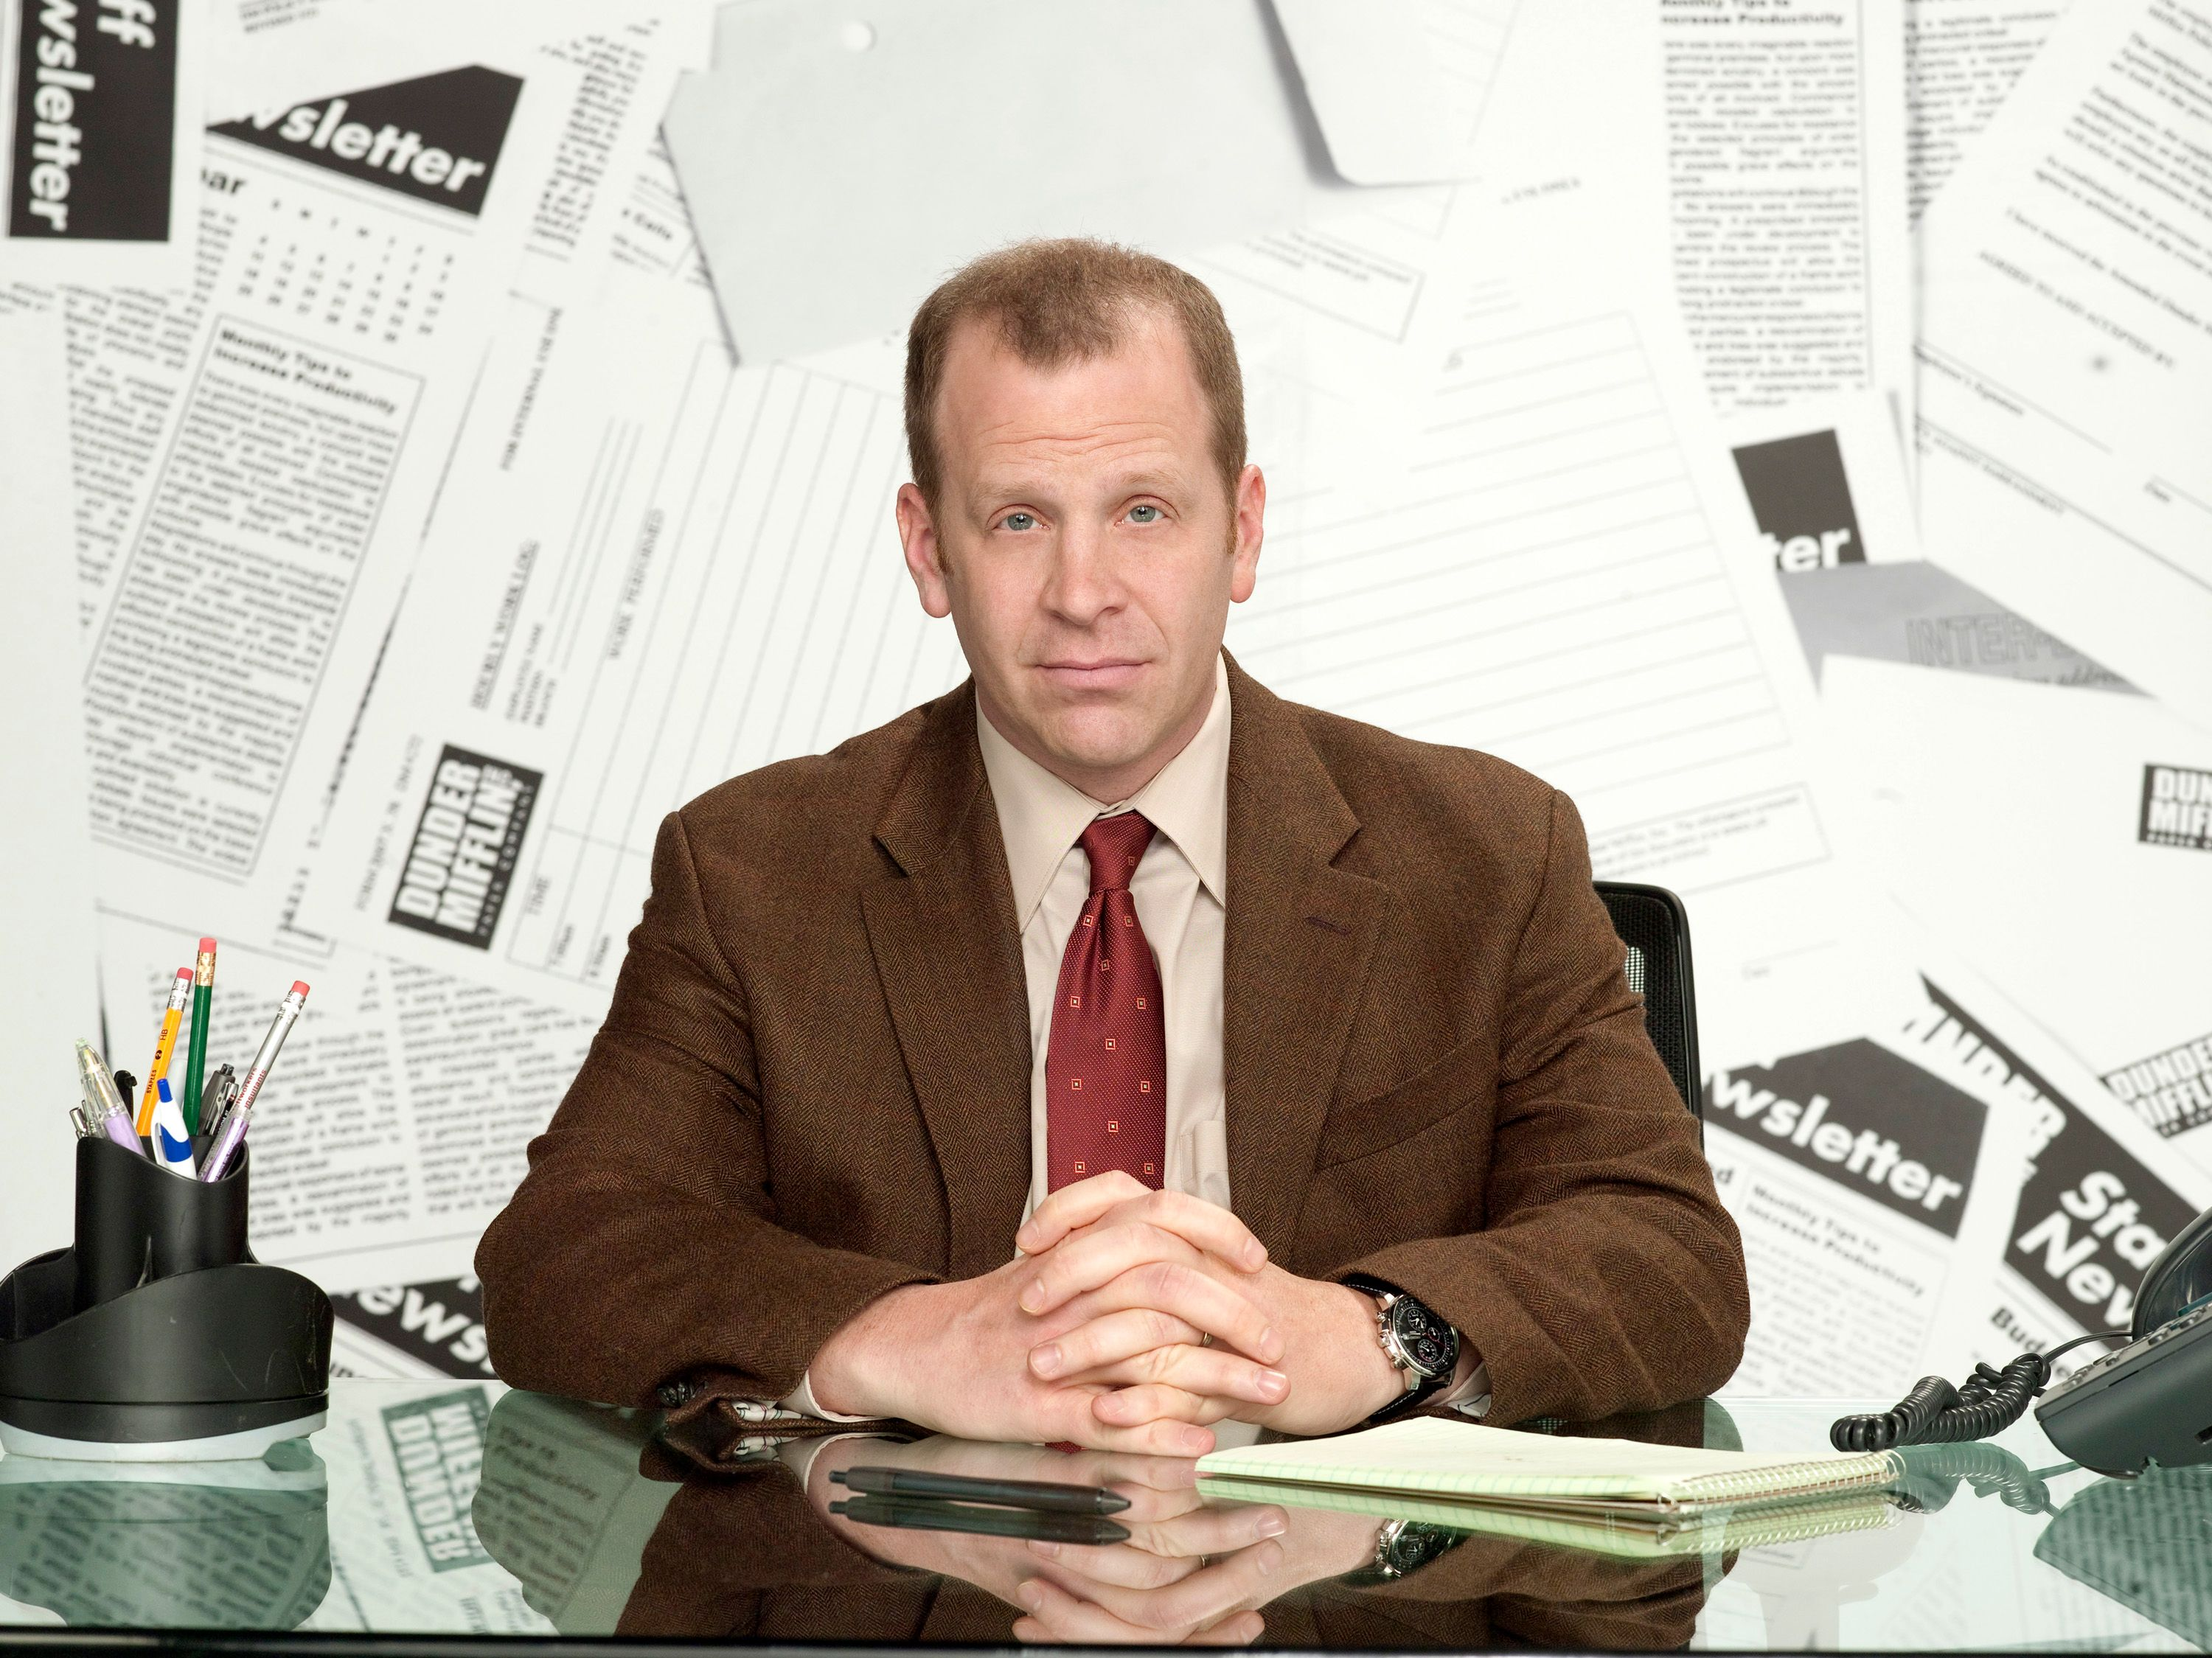 Paul Lieberstein as Toby Flenderson / Getty Images